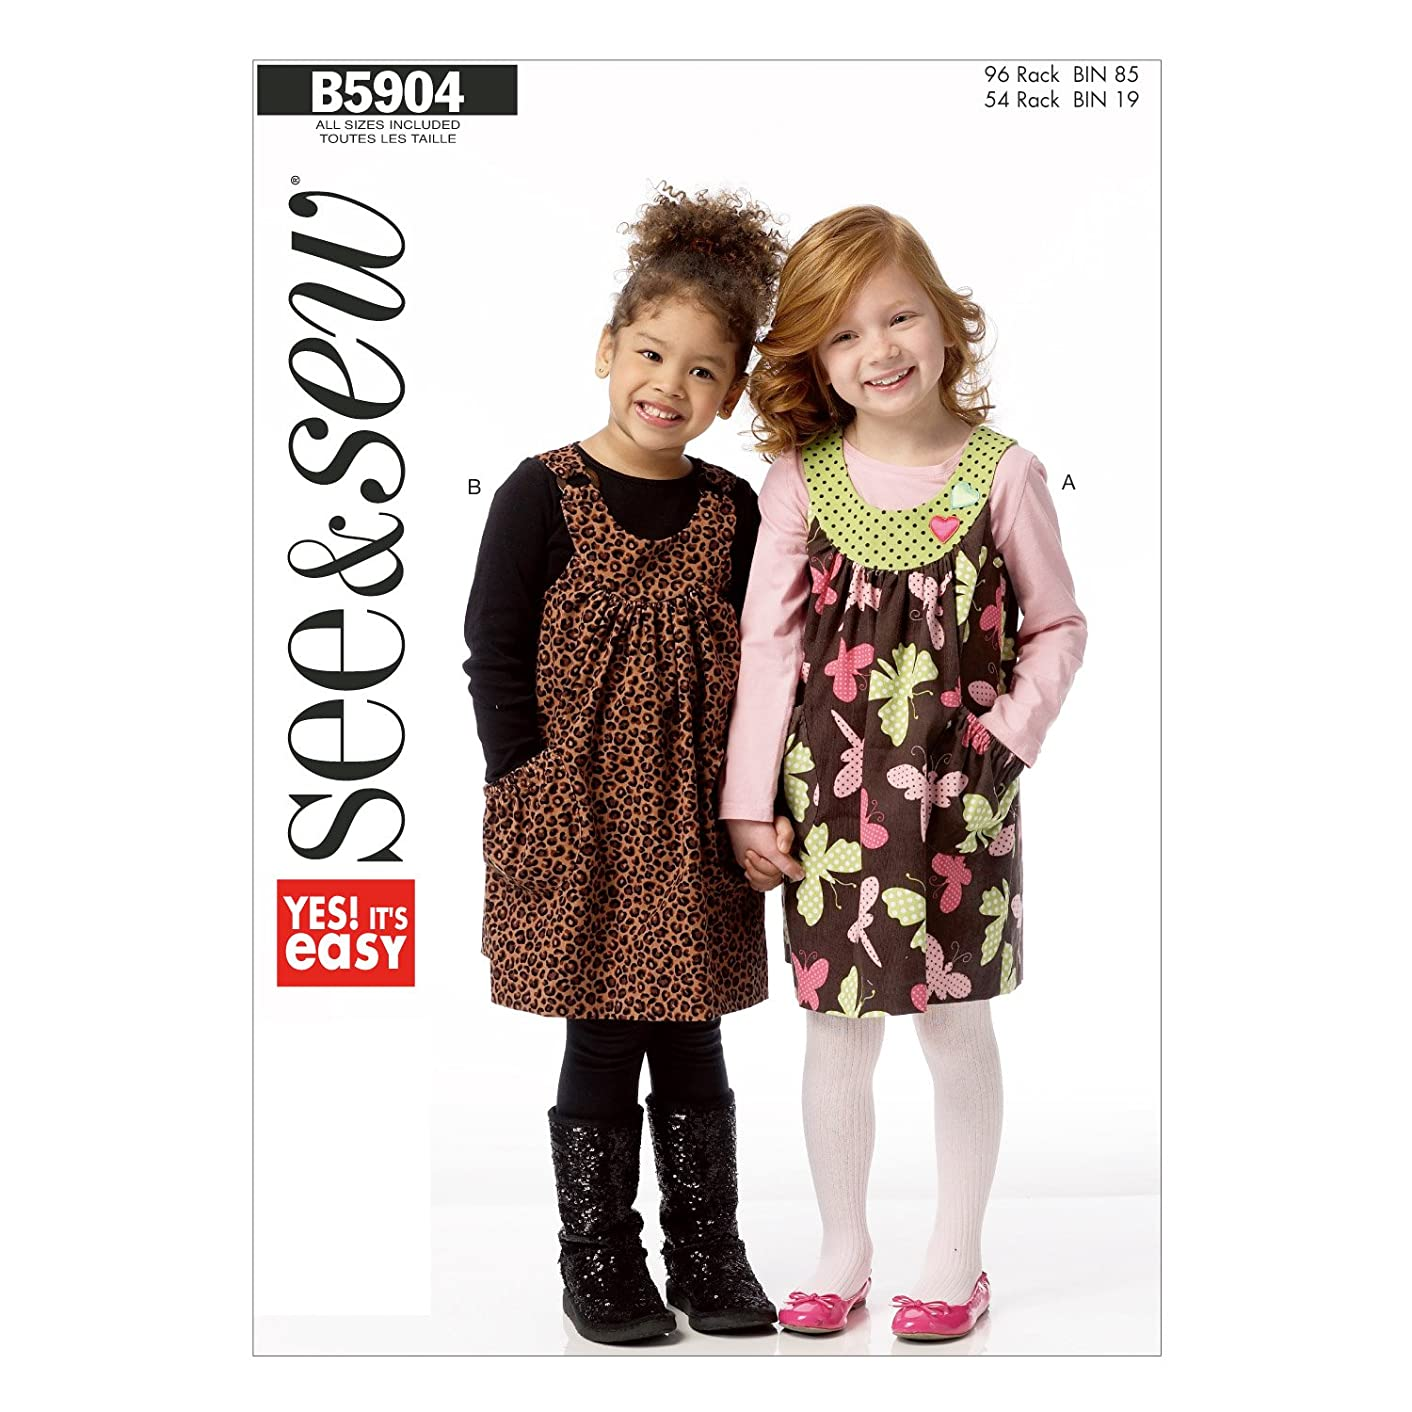 BUTTERICK PATTERNS B5904 Children's/Girls' Jumper Sewing Template, Size A in One Envelope